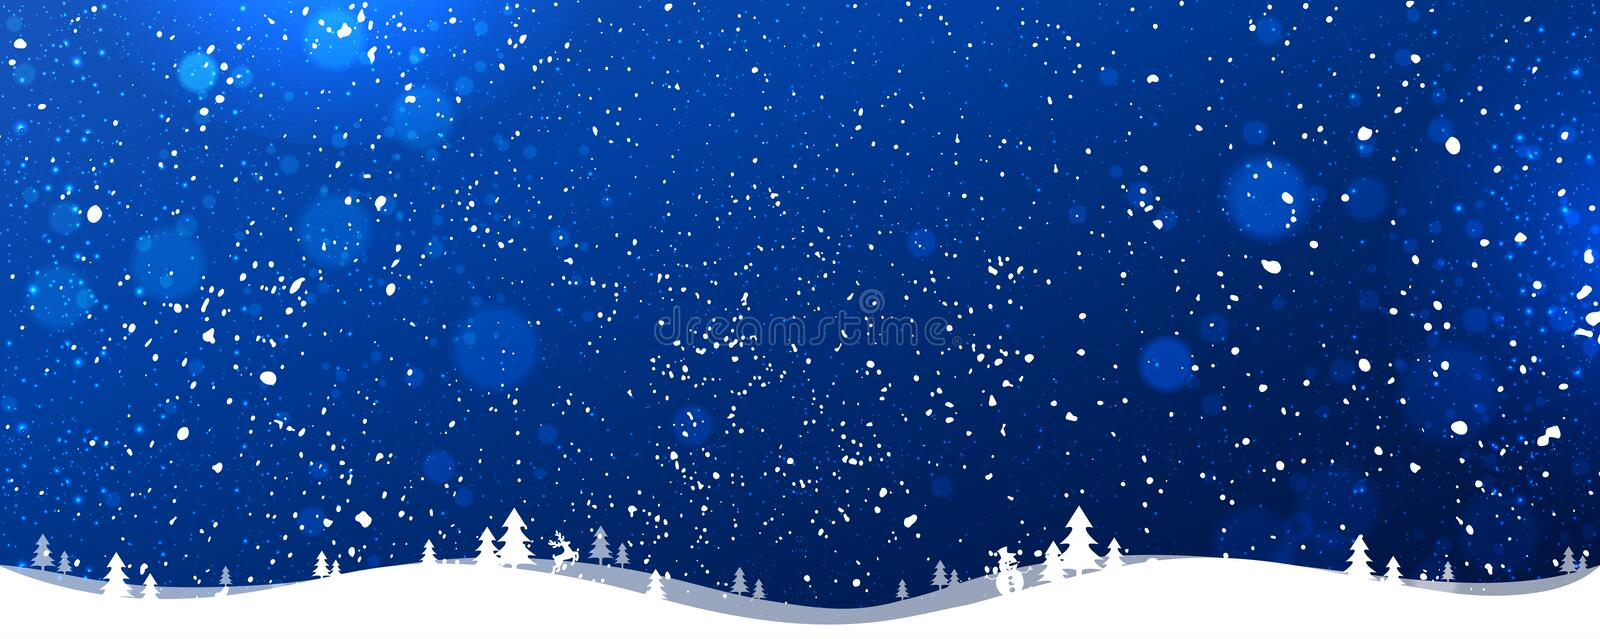 Blue winter Christmas background with snowflakes, light, stars. Xmas and New Year card. stock illustration